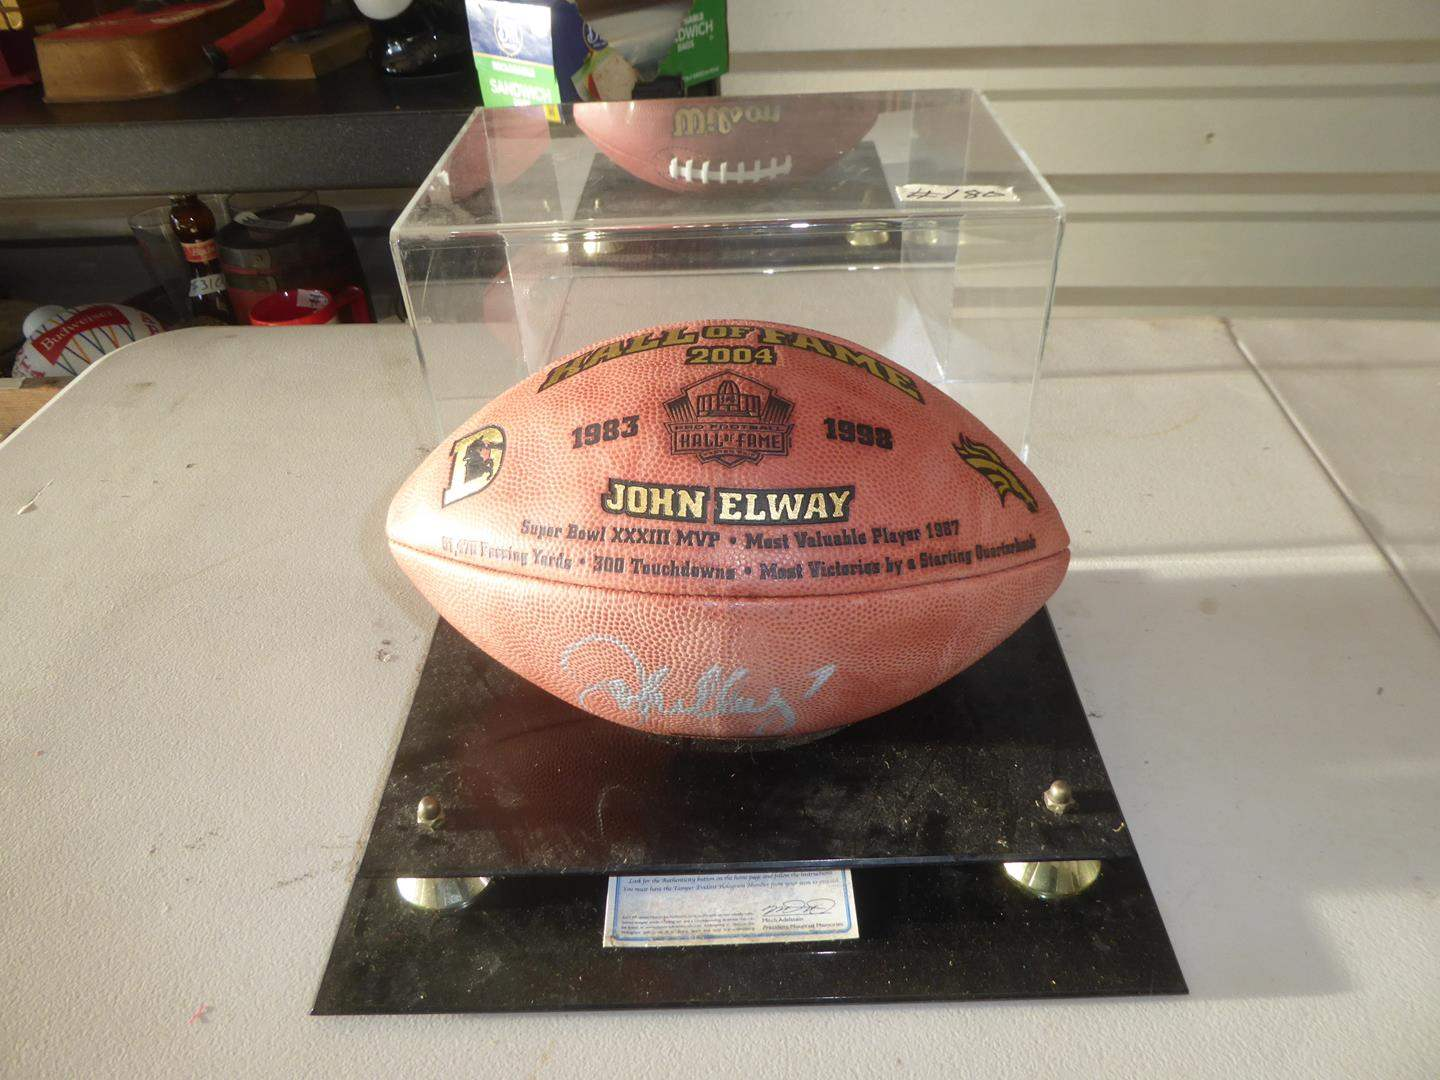 Lot # 180 - Vintage Hall of Fame Autographed Numbered John Elway Football Memorabilia in Case w/Certificate of Authenticity (main image)